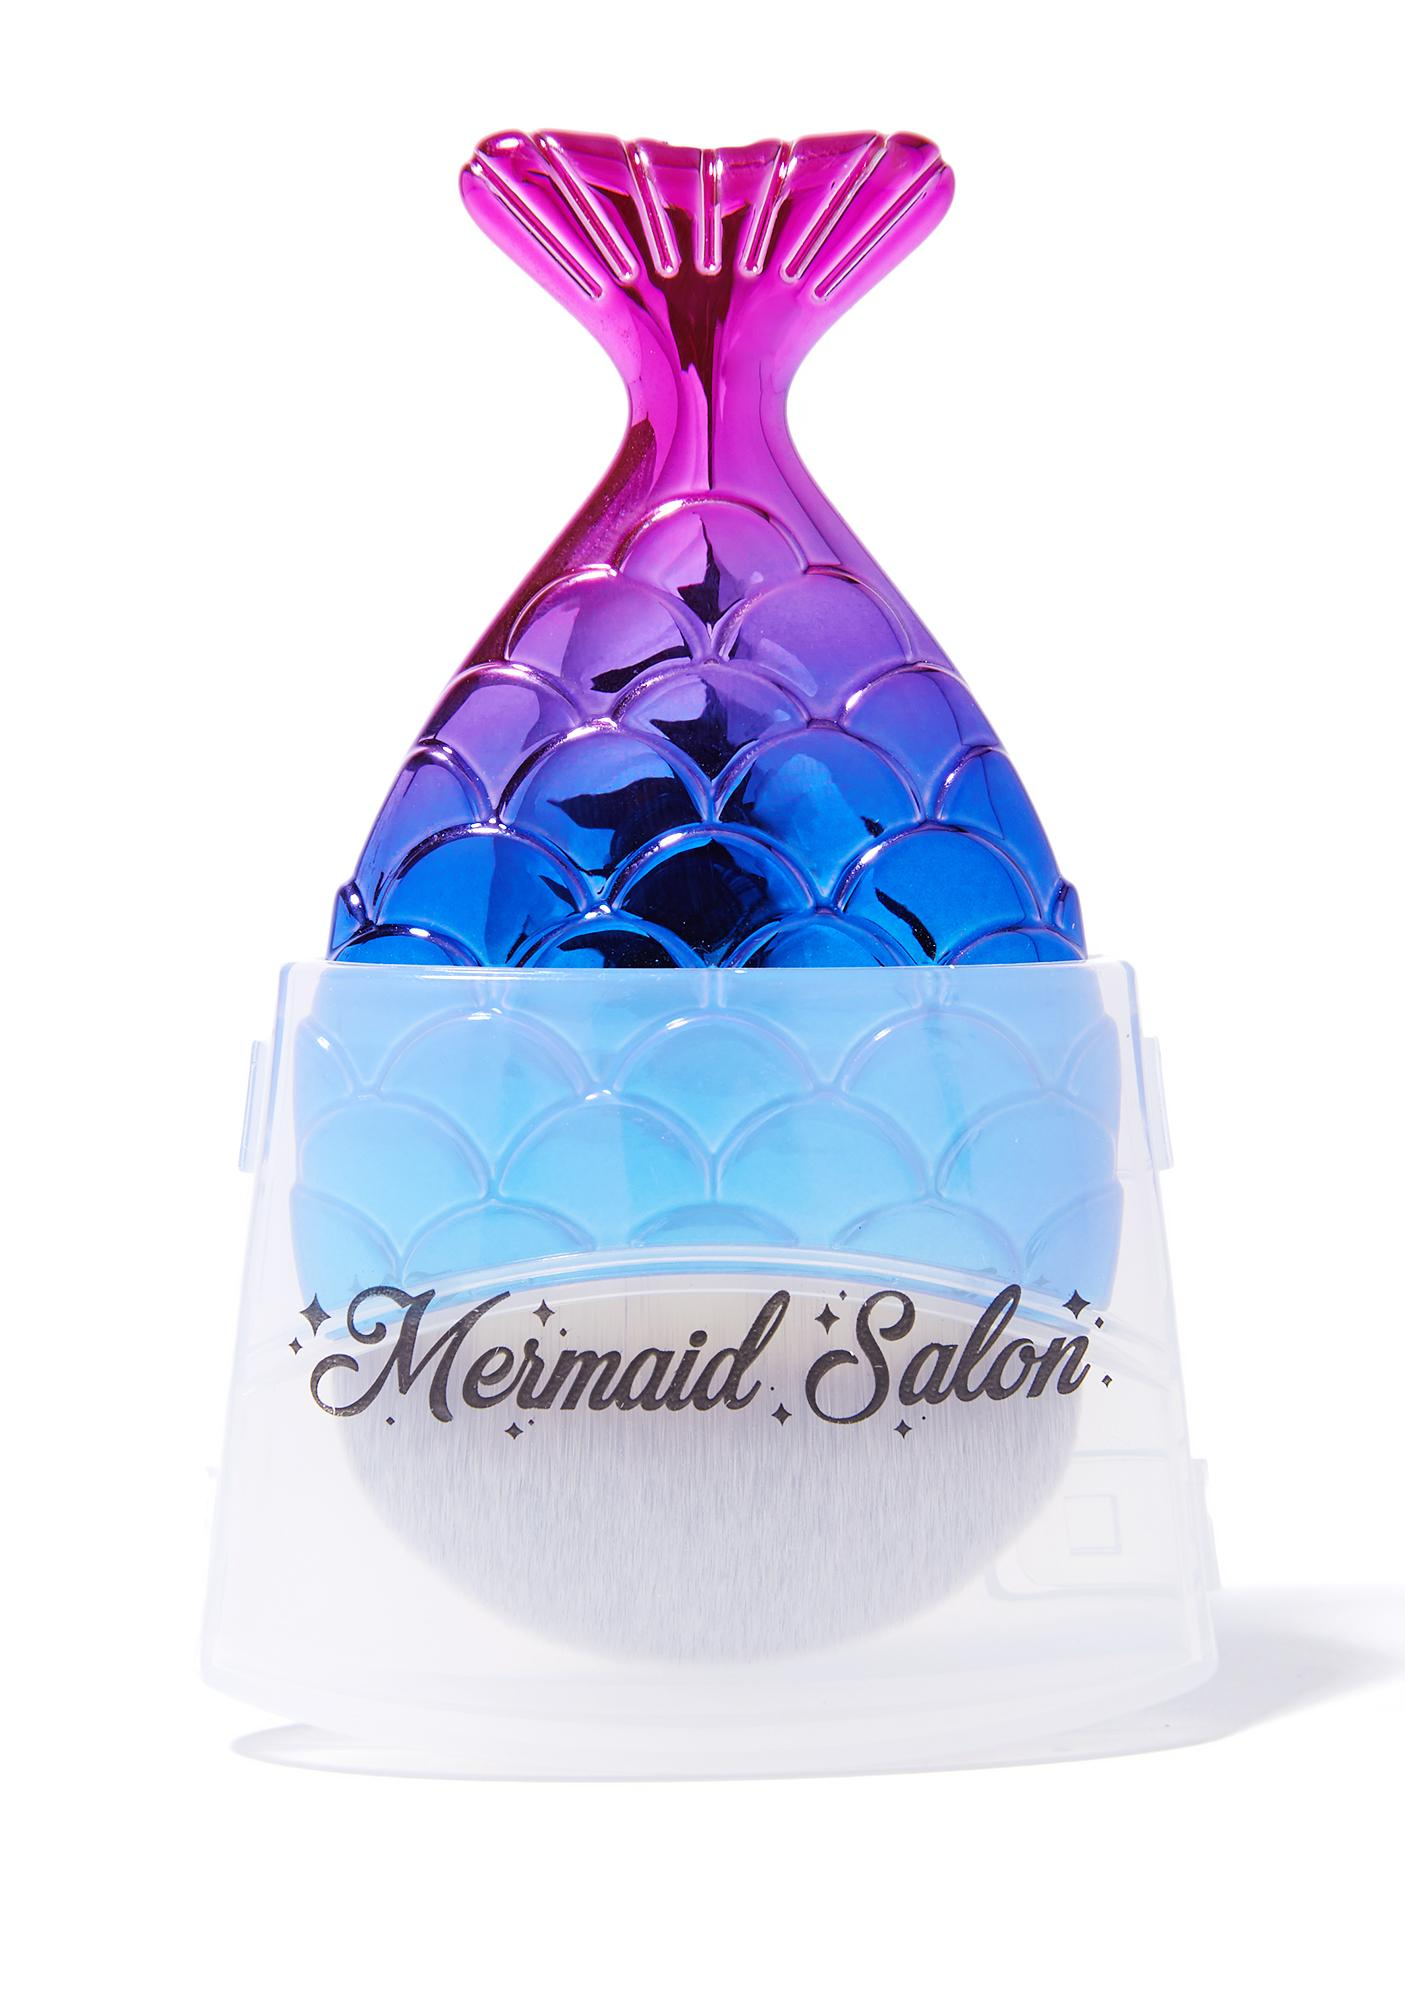 Mermaid Salon Rainbow Chubby Mermaid Brush